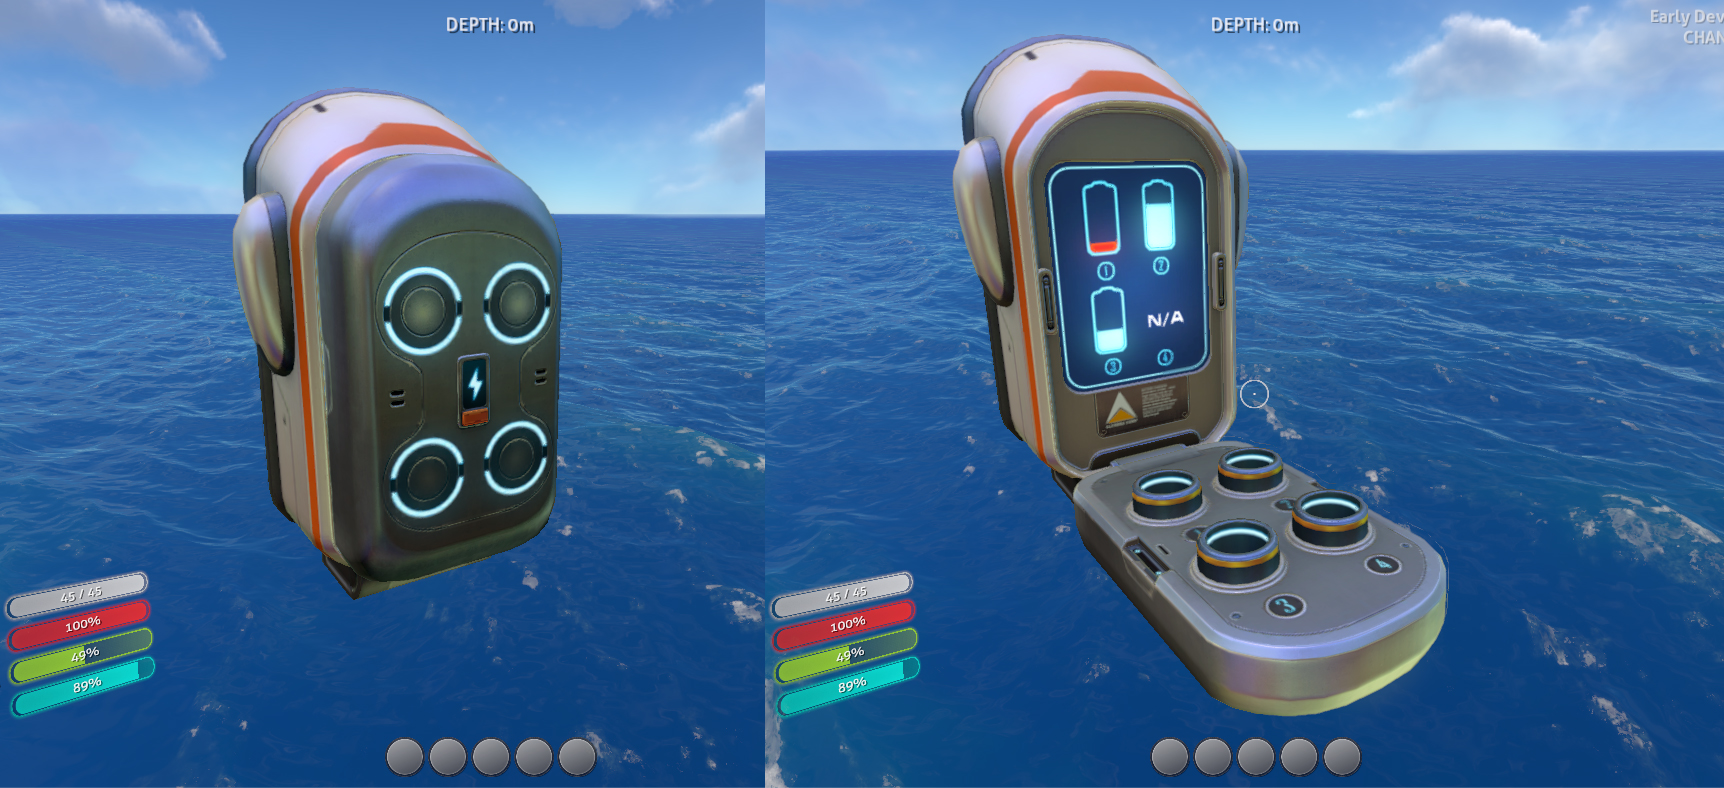 Battery charger subnautica wiki fandom powered by wikia malvernweather Image collections